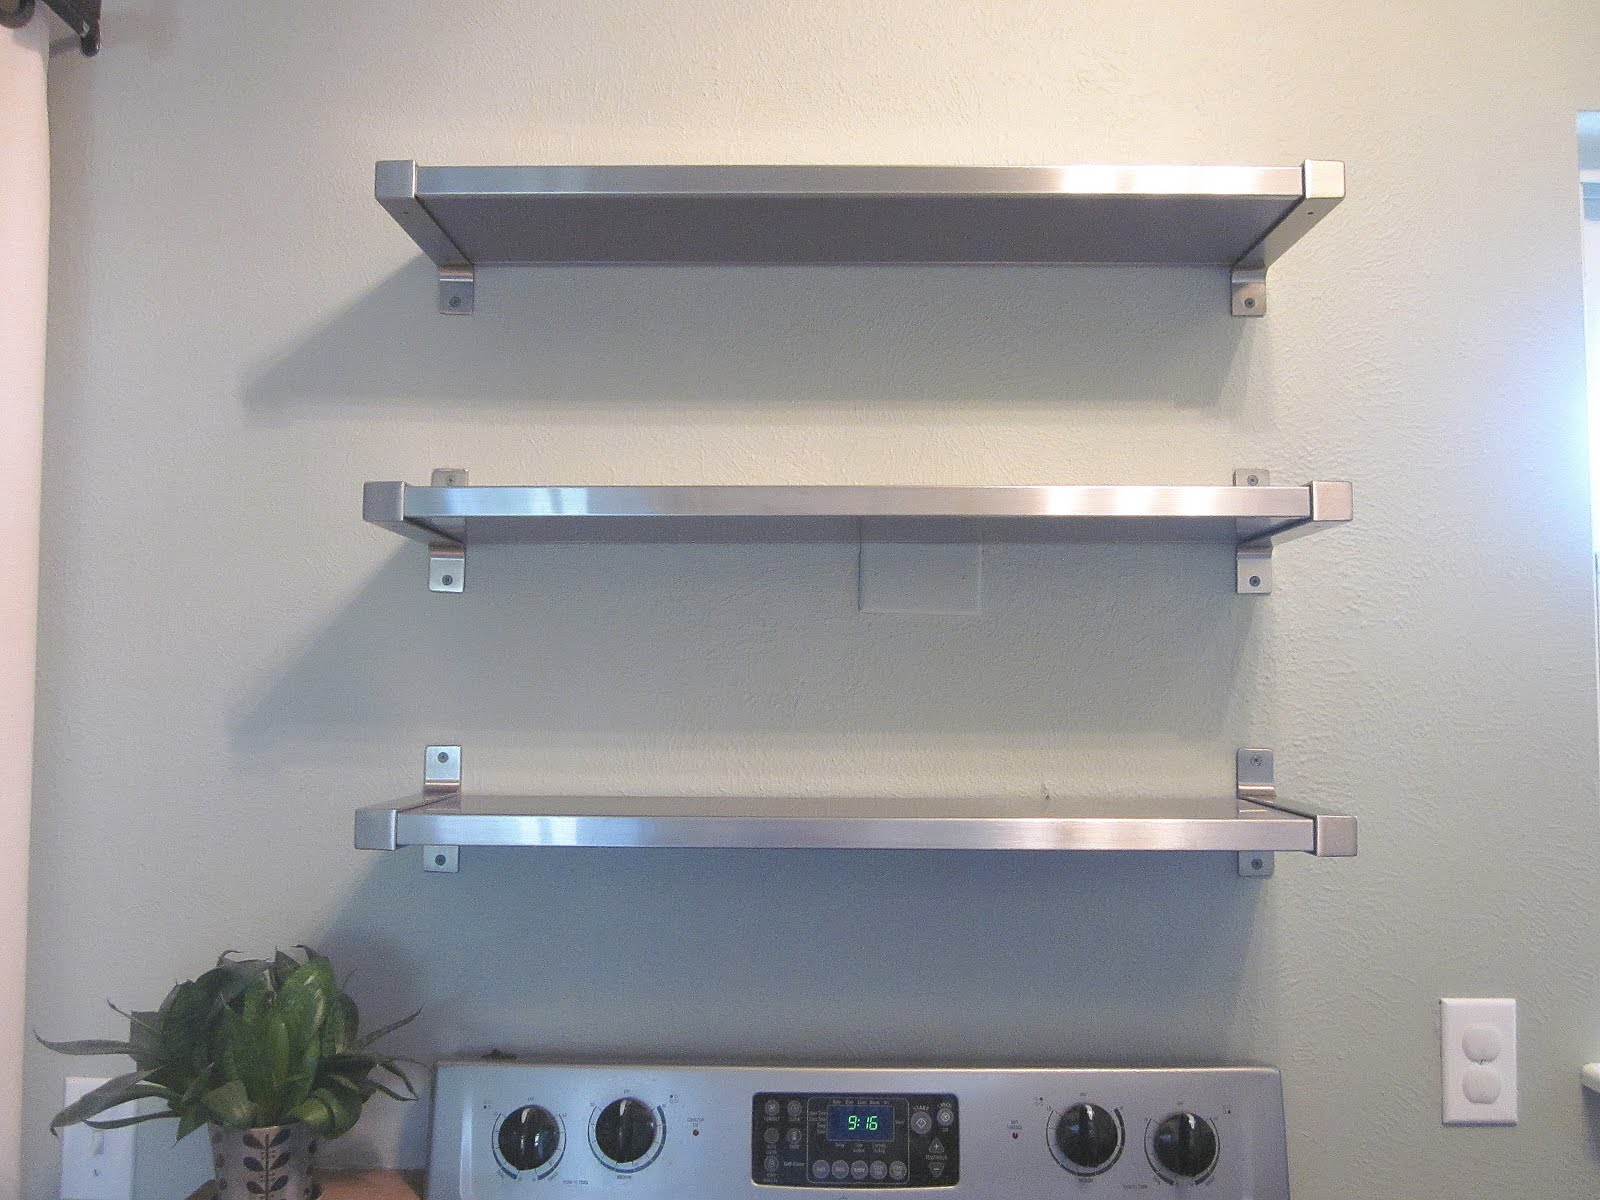 Kitchen shelves wall mounted photo - 2